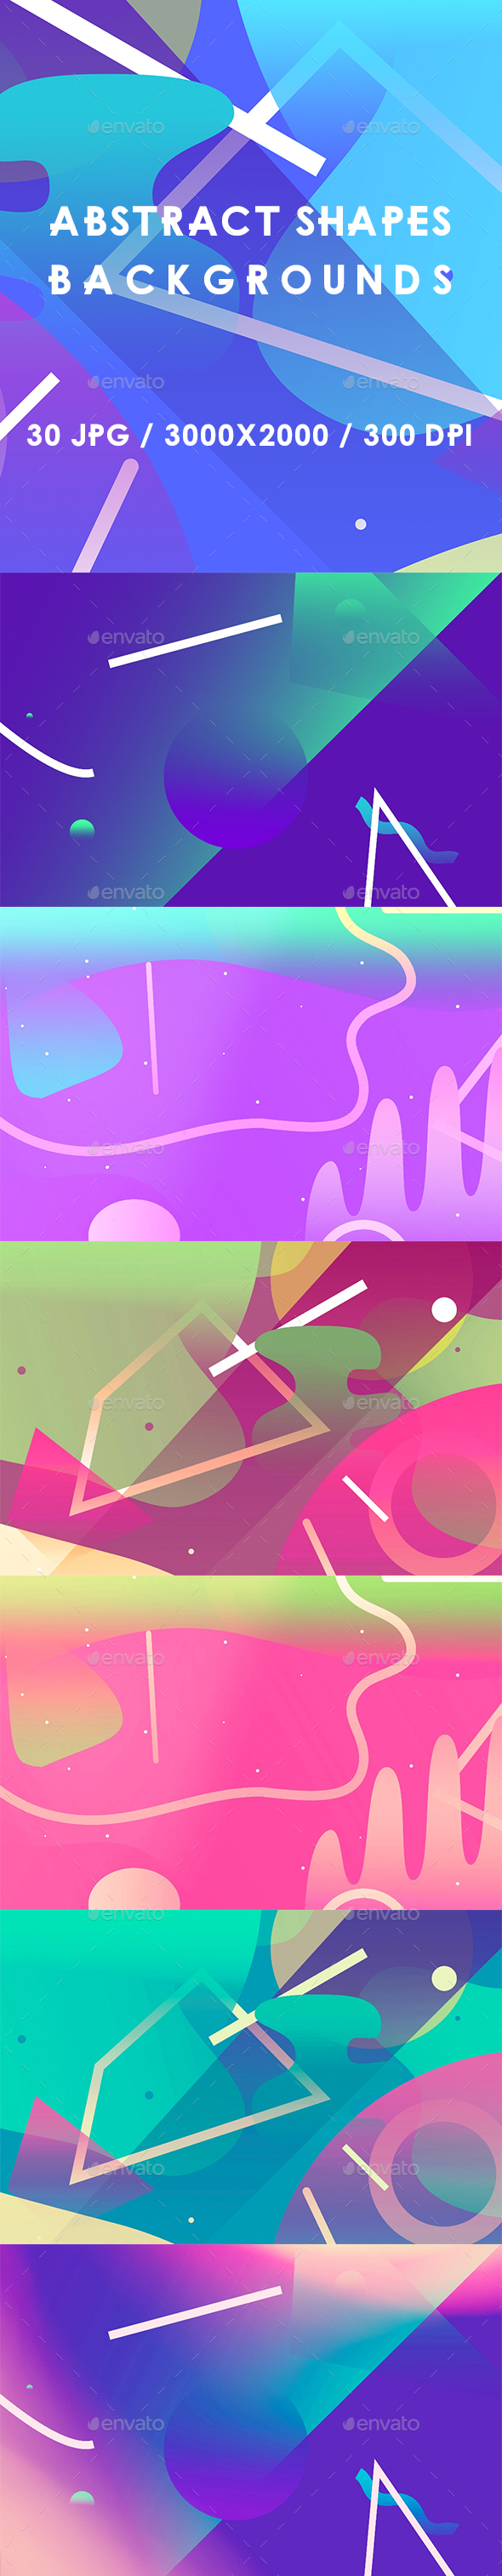 30 Abstract Shapes Backgrounds - Abstract Backgrounds